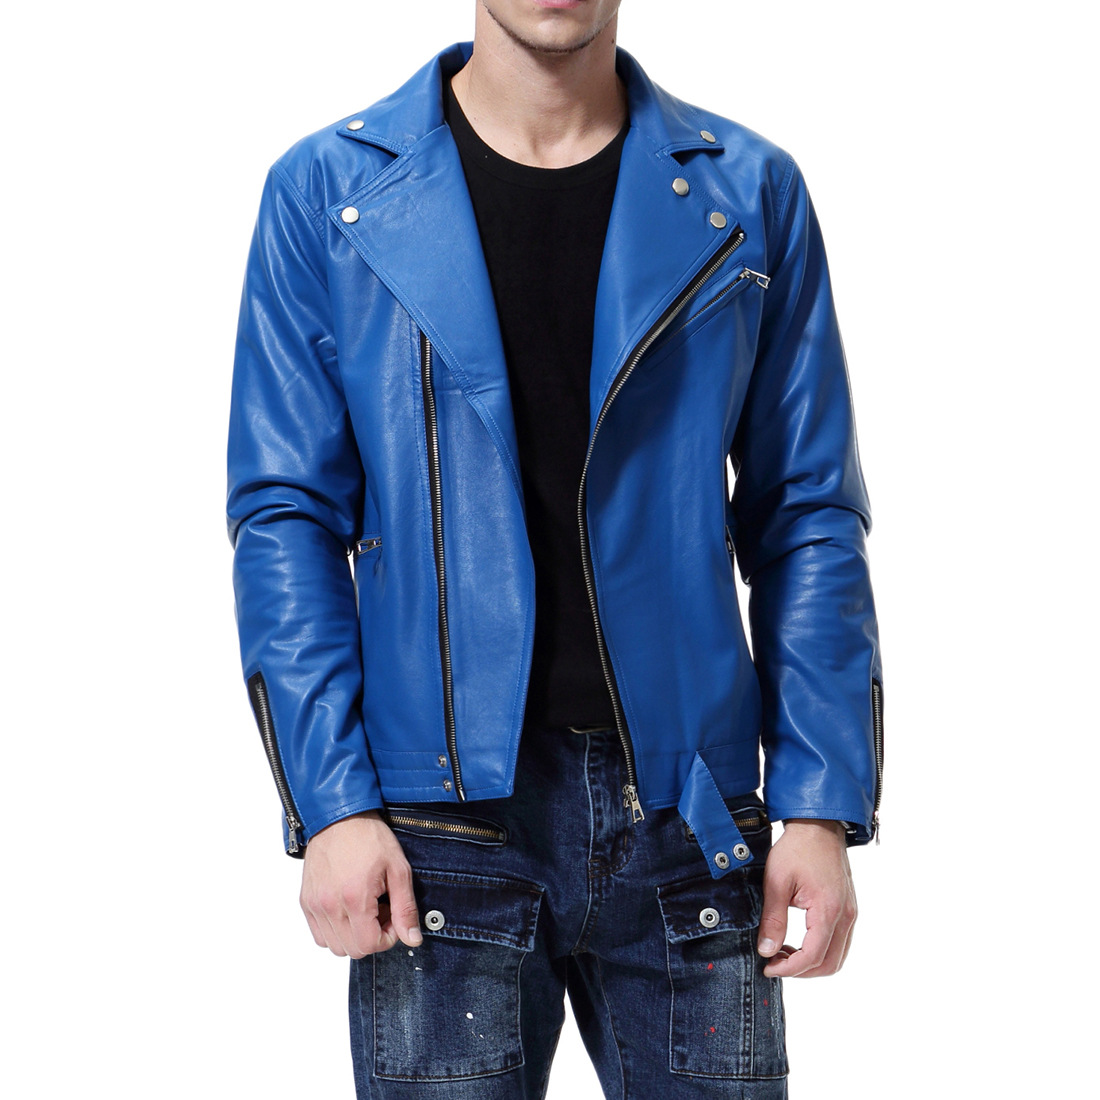 Autumn New Style Men Locomotive Leather Coat Occident Fashion Large Size MEN'S Leather Jacket Y667